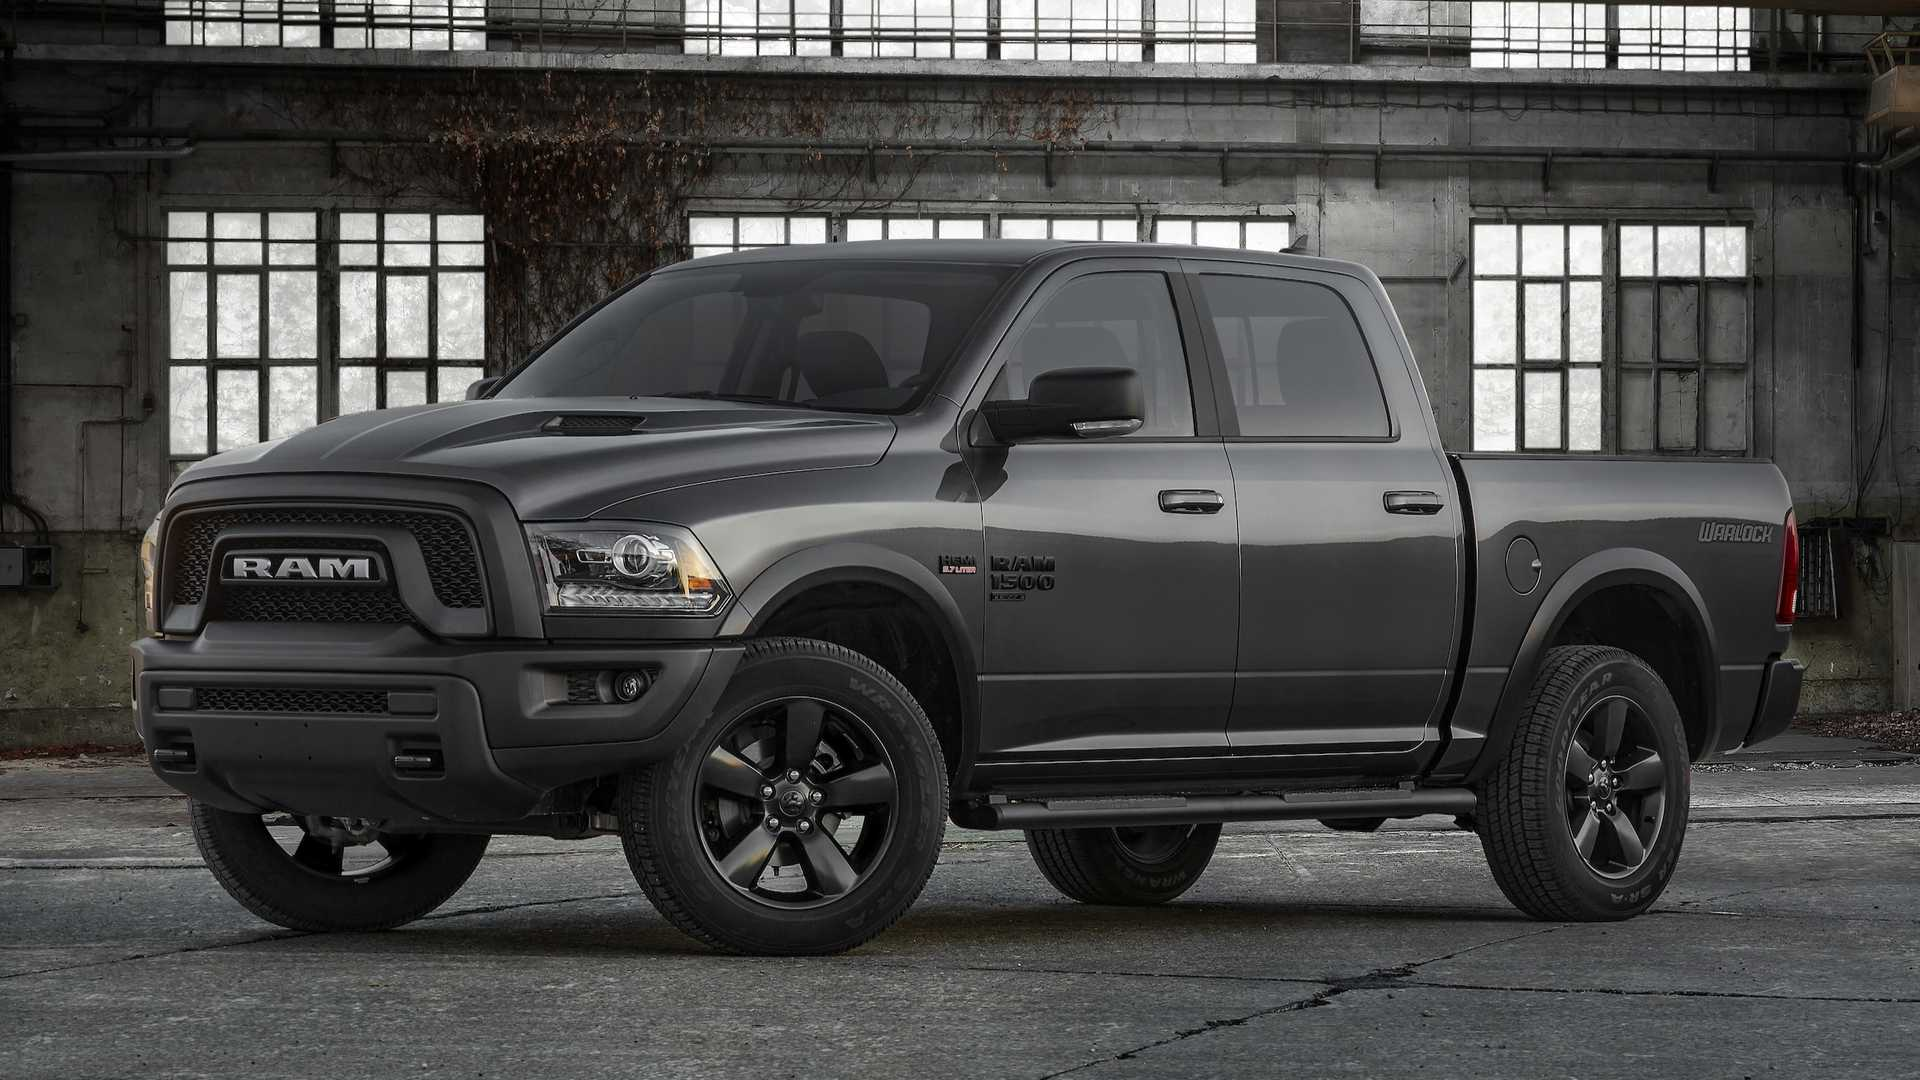 Best Warlock Names 2019 2019 Ram 1500 Classic Warlock Revives The Iconic '70's Truck